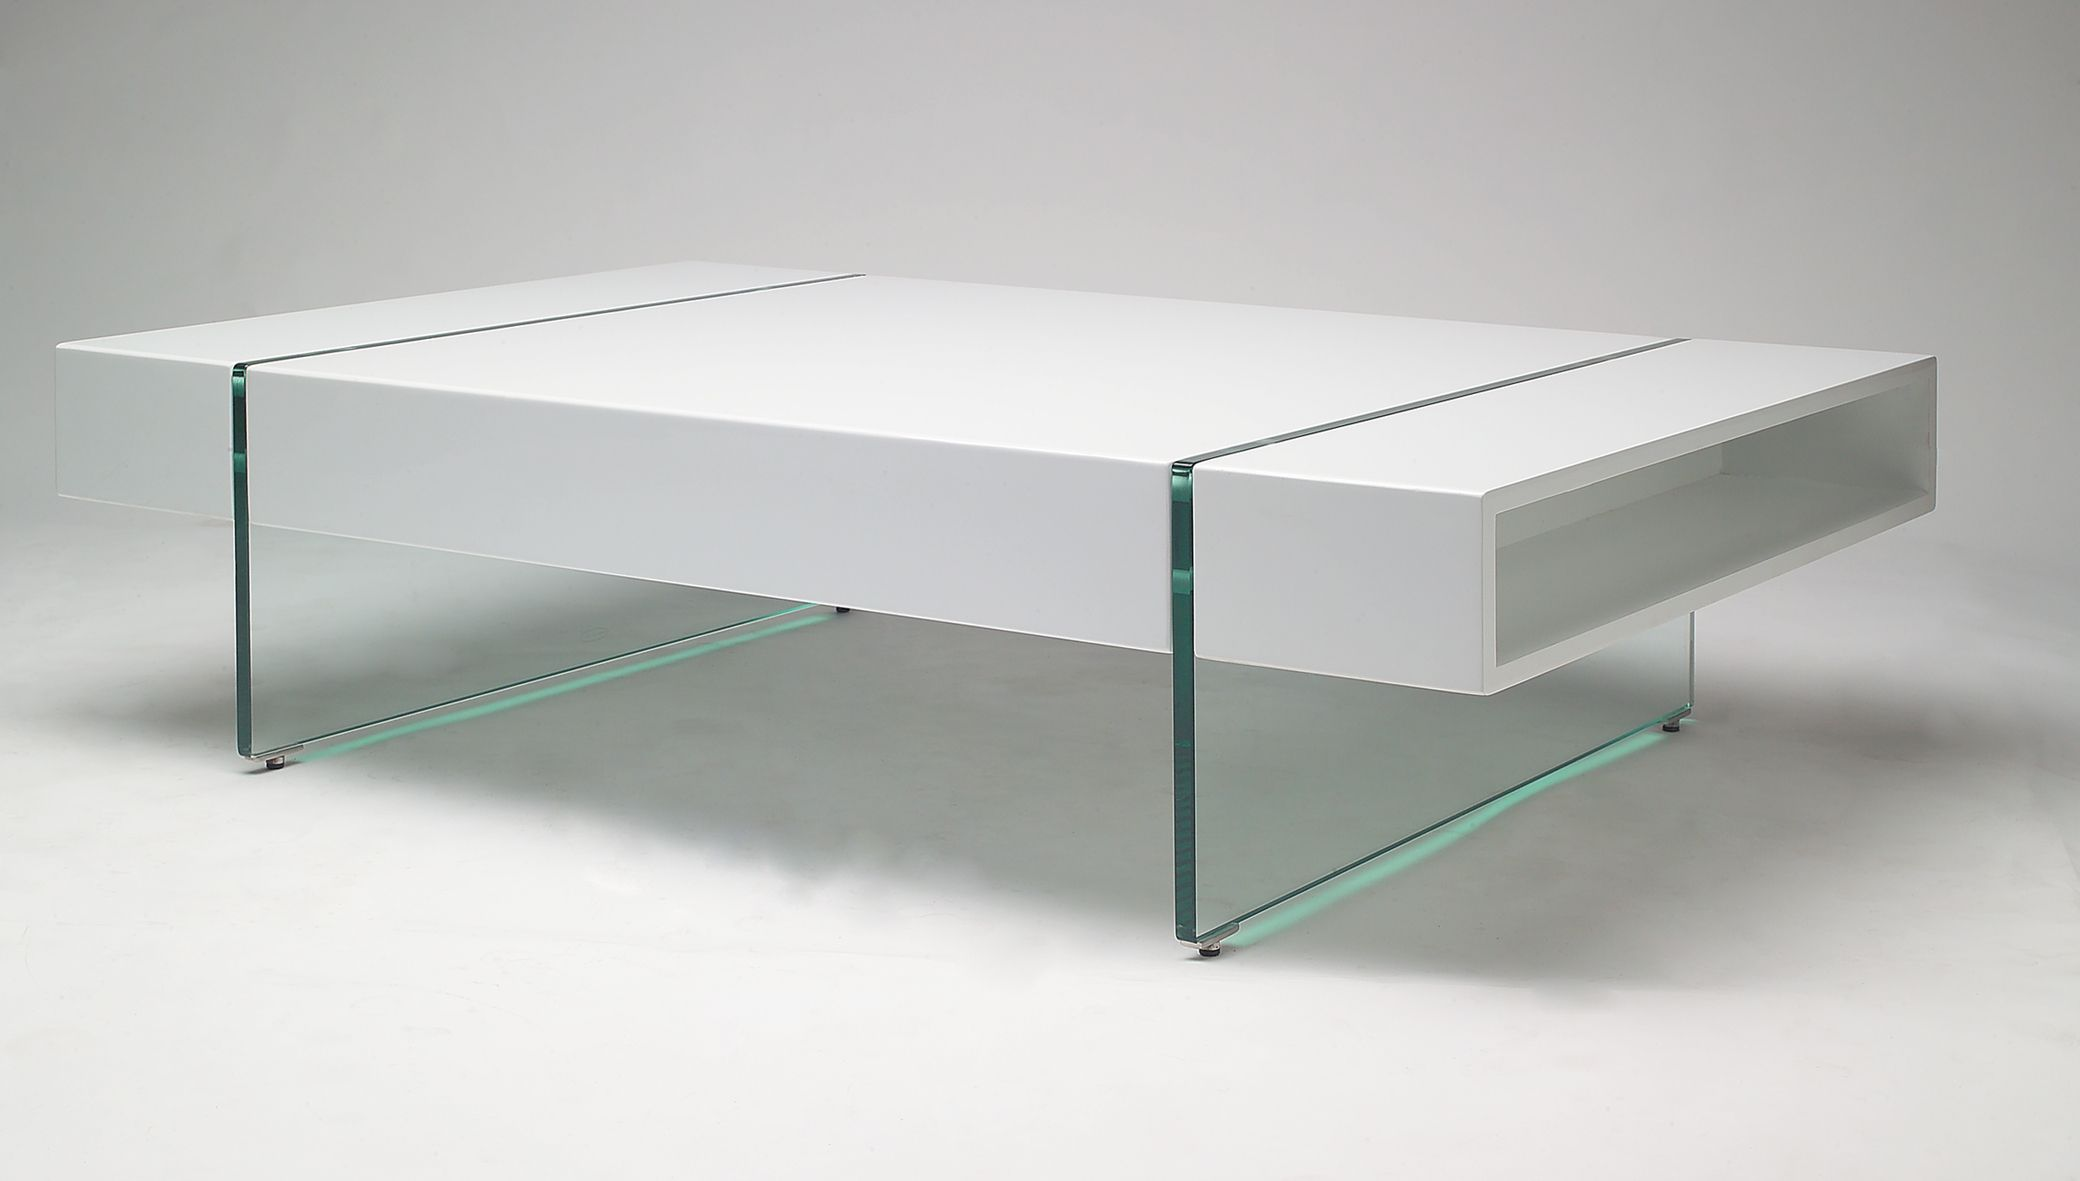 White Coffee Table Modern With Storage Tables Image Hd Журнальные столики Pinterest